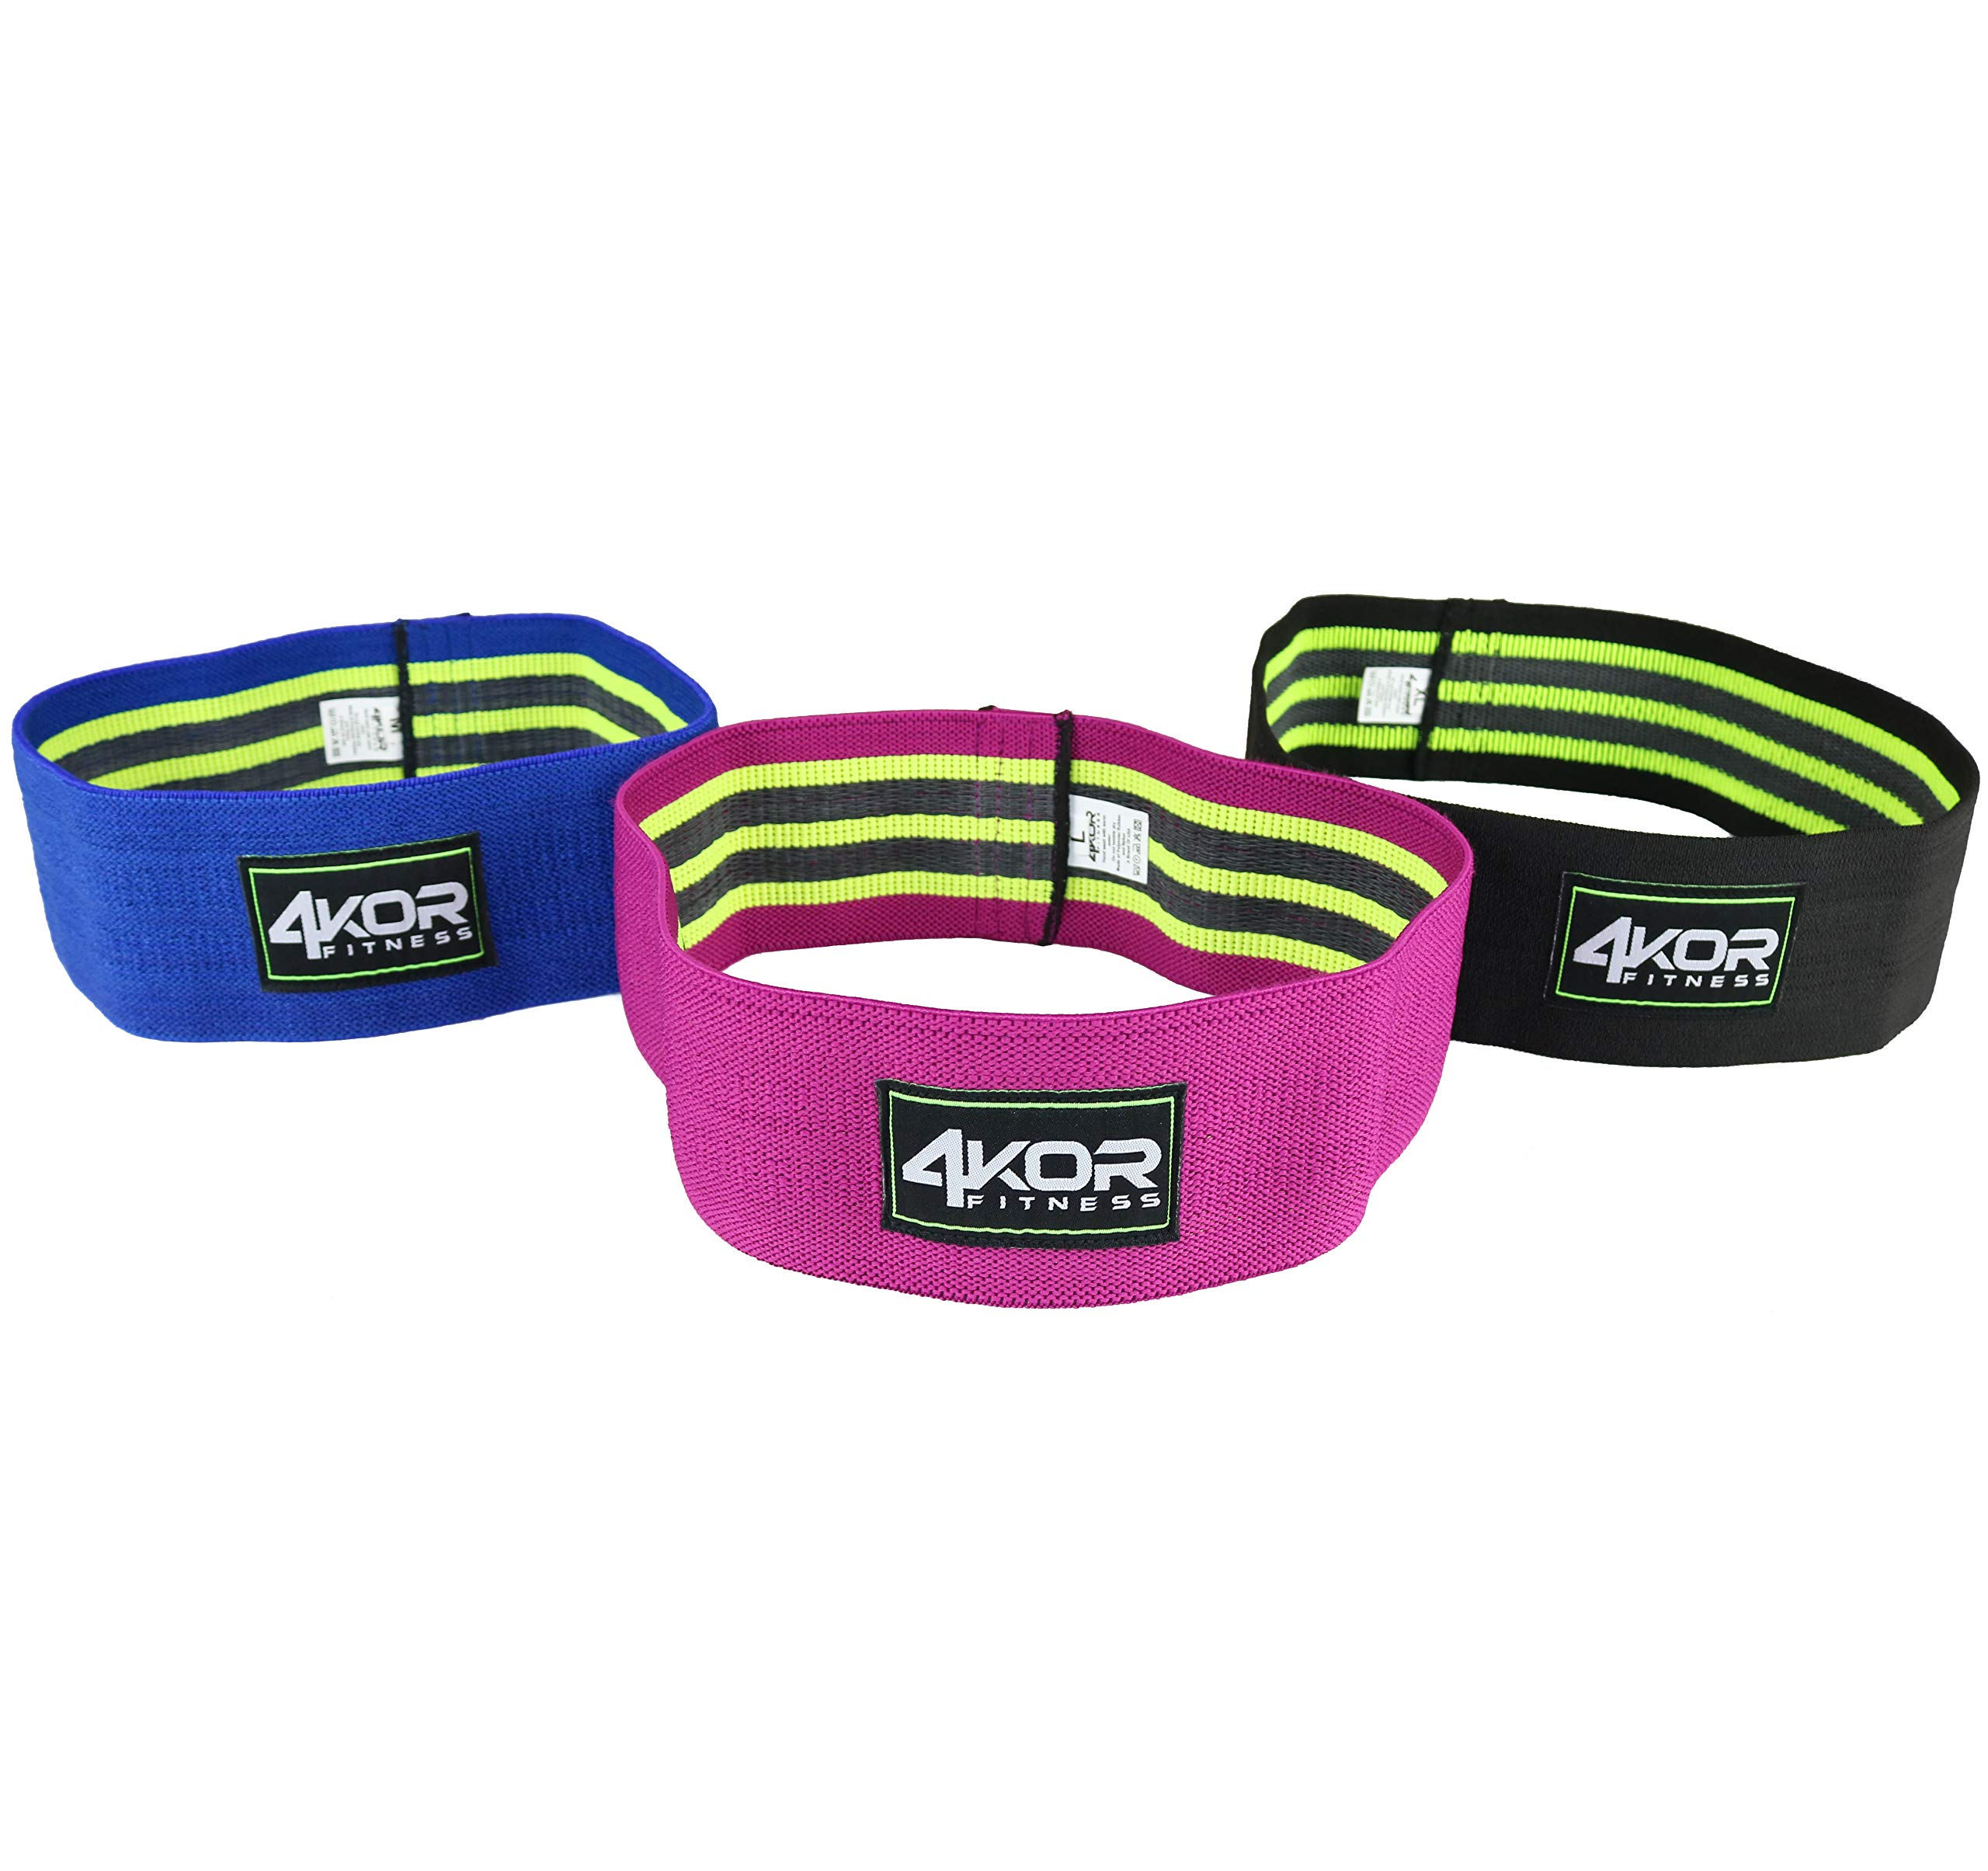 4KOR Fitness Resistance Loop Band Set, Perfect for Crossfit, Yoga, Physical Therapy, and Booty Building (3 Grippy Hip Band Set)